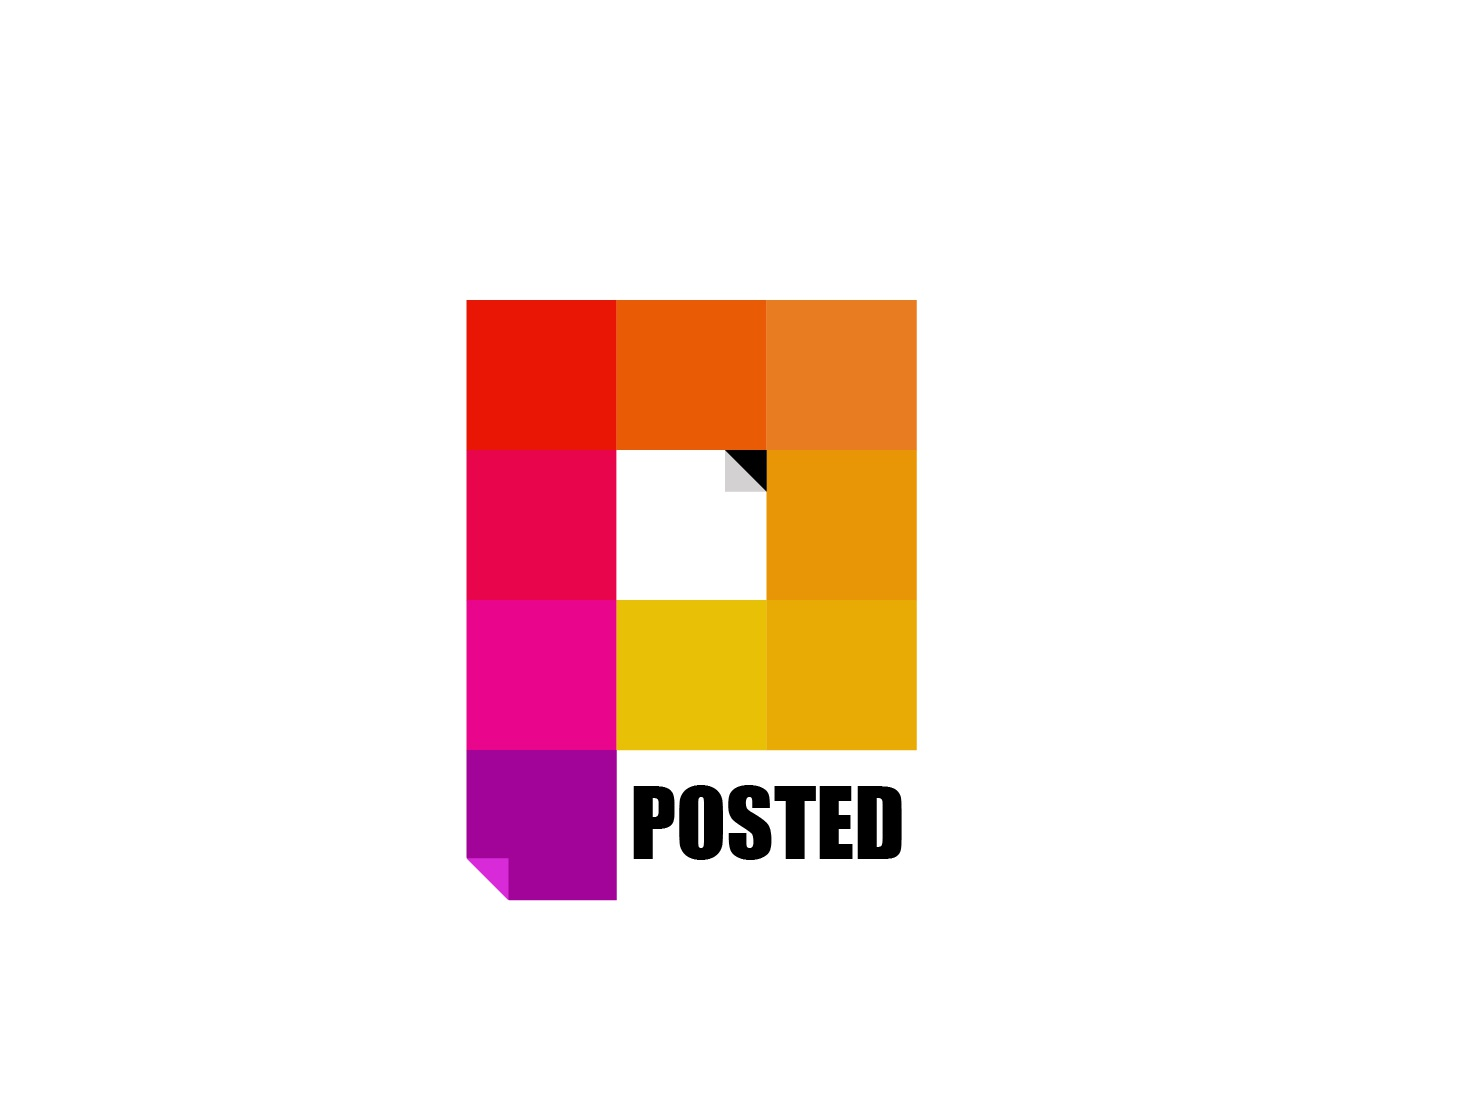 Posted Logo idea post identity logo design branding color notes sticker posted